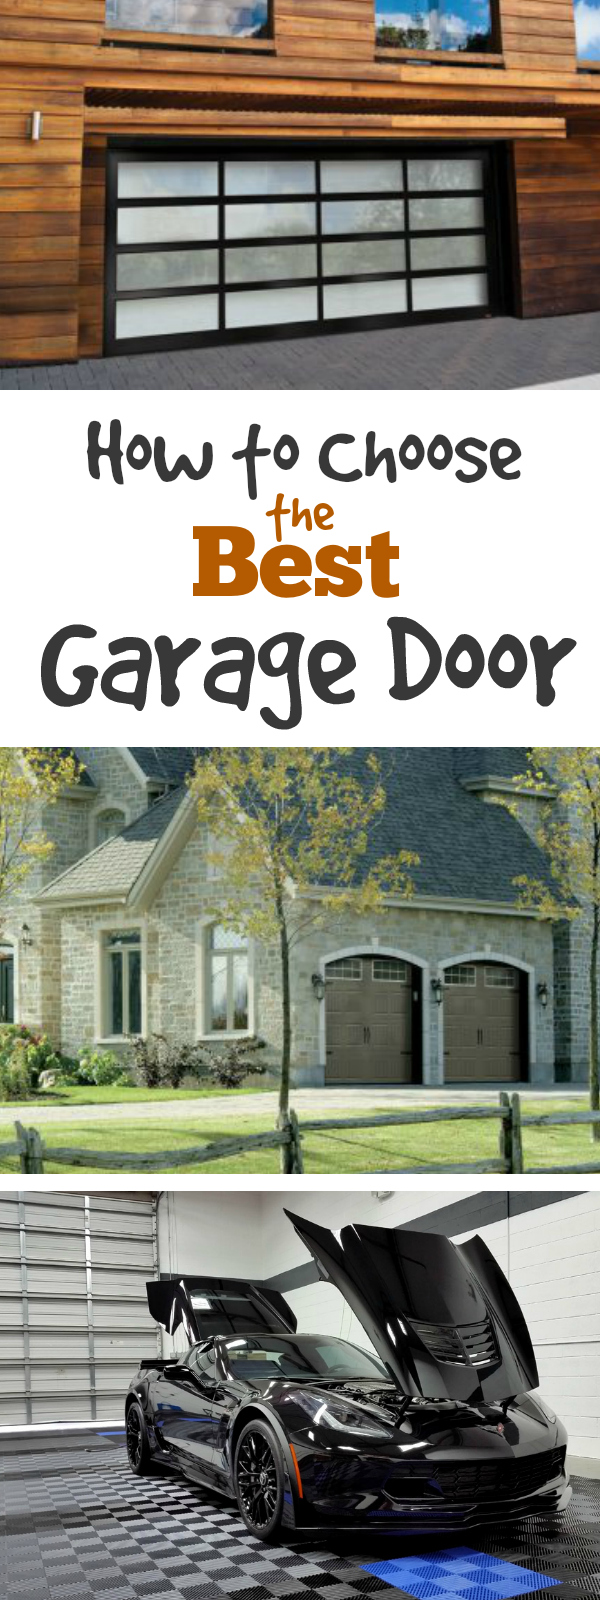 How to Choose Your Garage Door: Learn how to choose the best garage door for & How to Choose the Best Garage Door - FlooringInc Blog